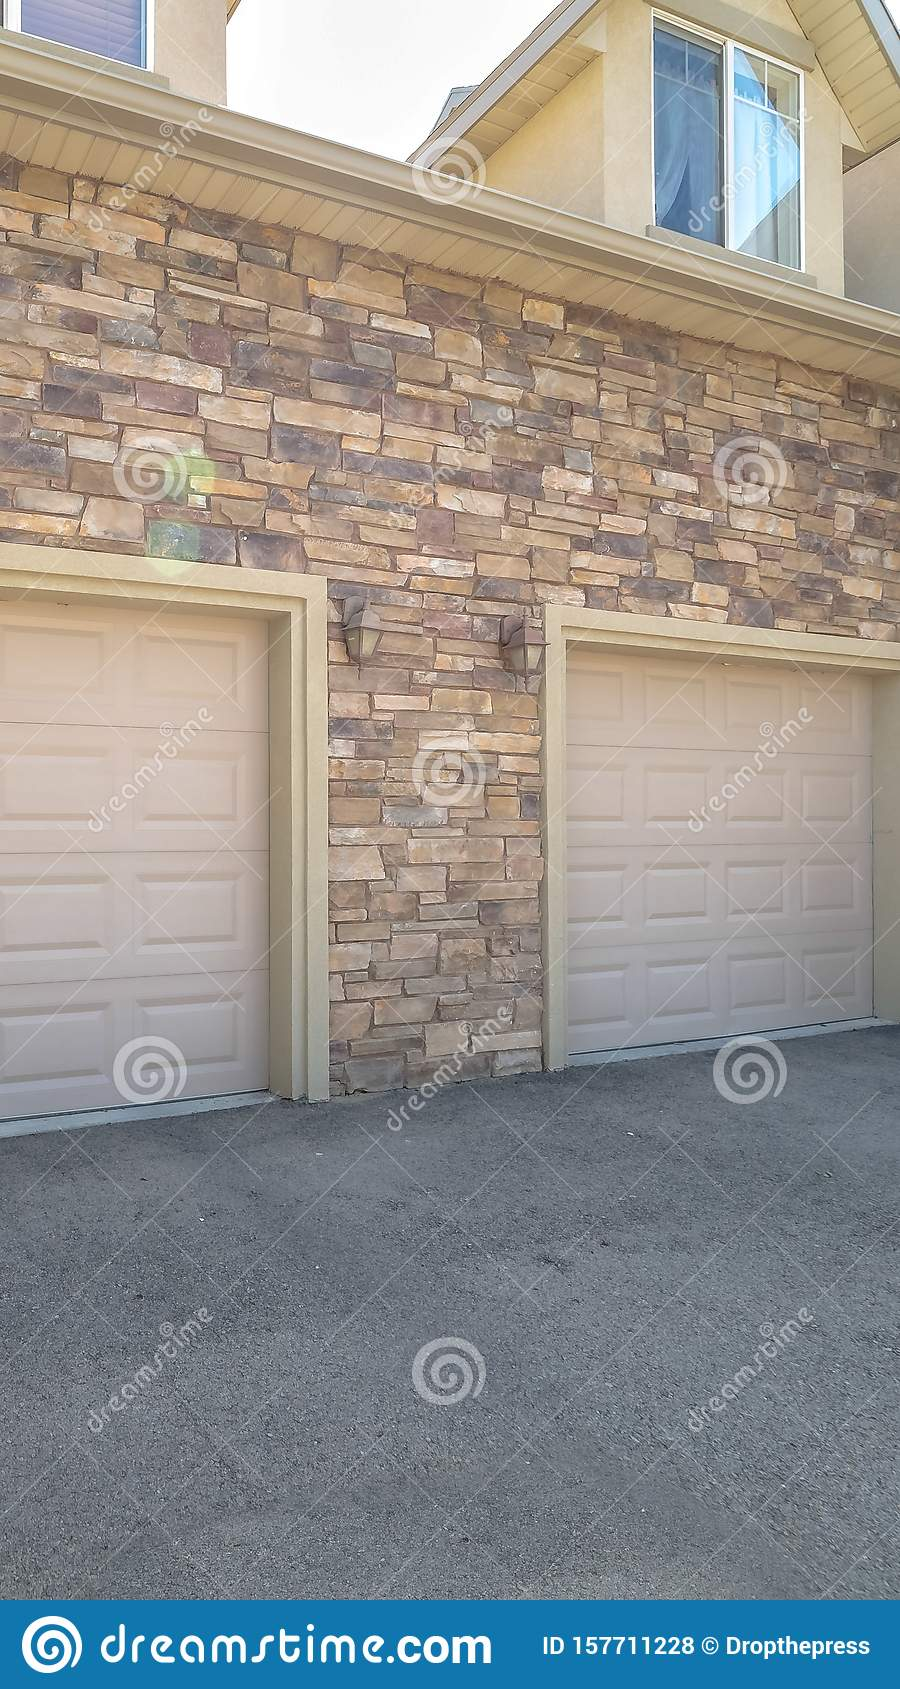 Vertical White Garage Doors Of A Home Against Exterior Wall Covered With Stone Bricks Stock Photo Image Of Garage Door 157711228